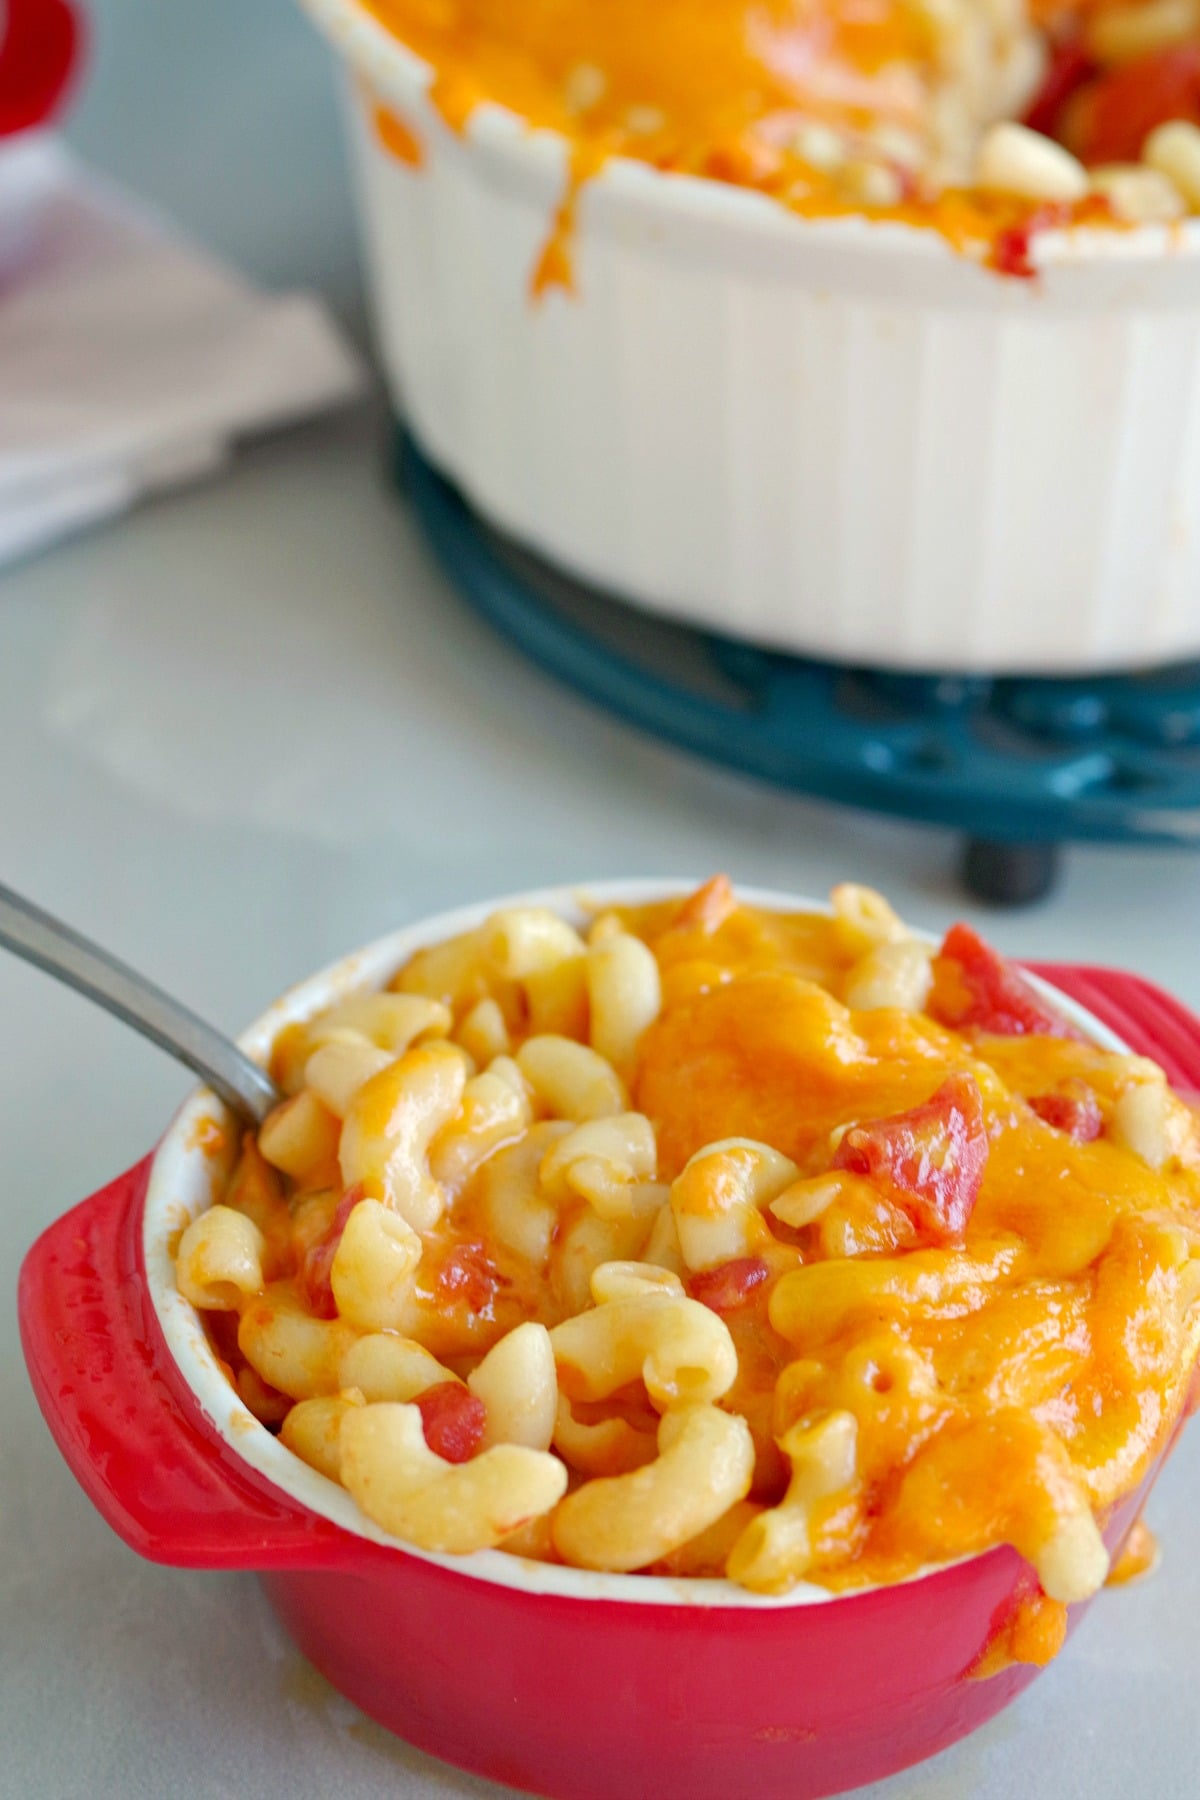 macaroni cheese and tomatoes in red bowl